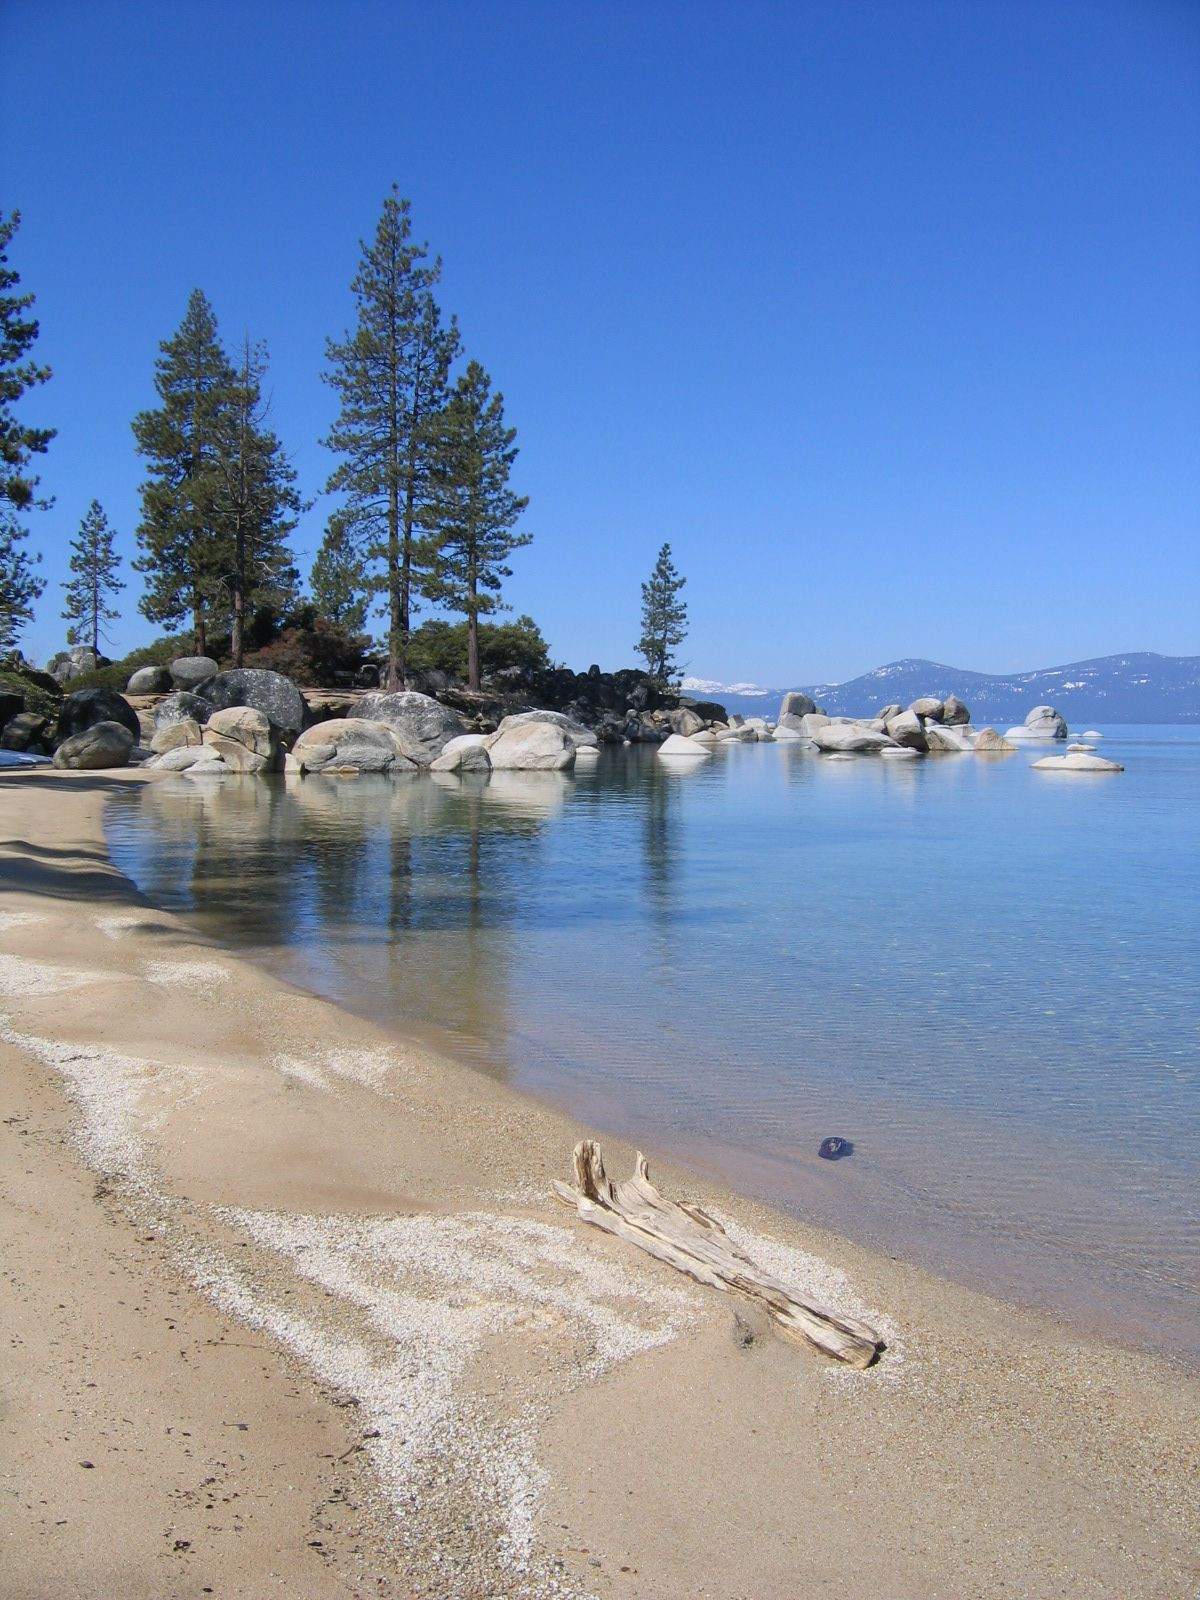 Lake tahoe sunset travel channel pinterest - Sand Harbor This Year We Want To Visit Sand Harbor I Think It Would Be Lake Tahoe Nevadatravel Tripthe Visitorsthe Sunsetsummer Sunperfect